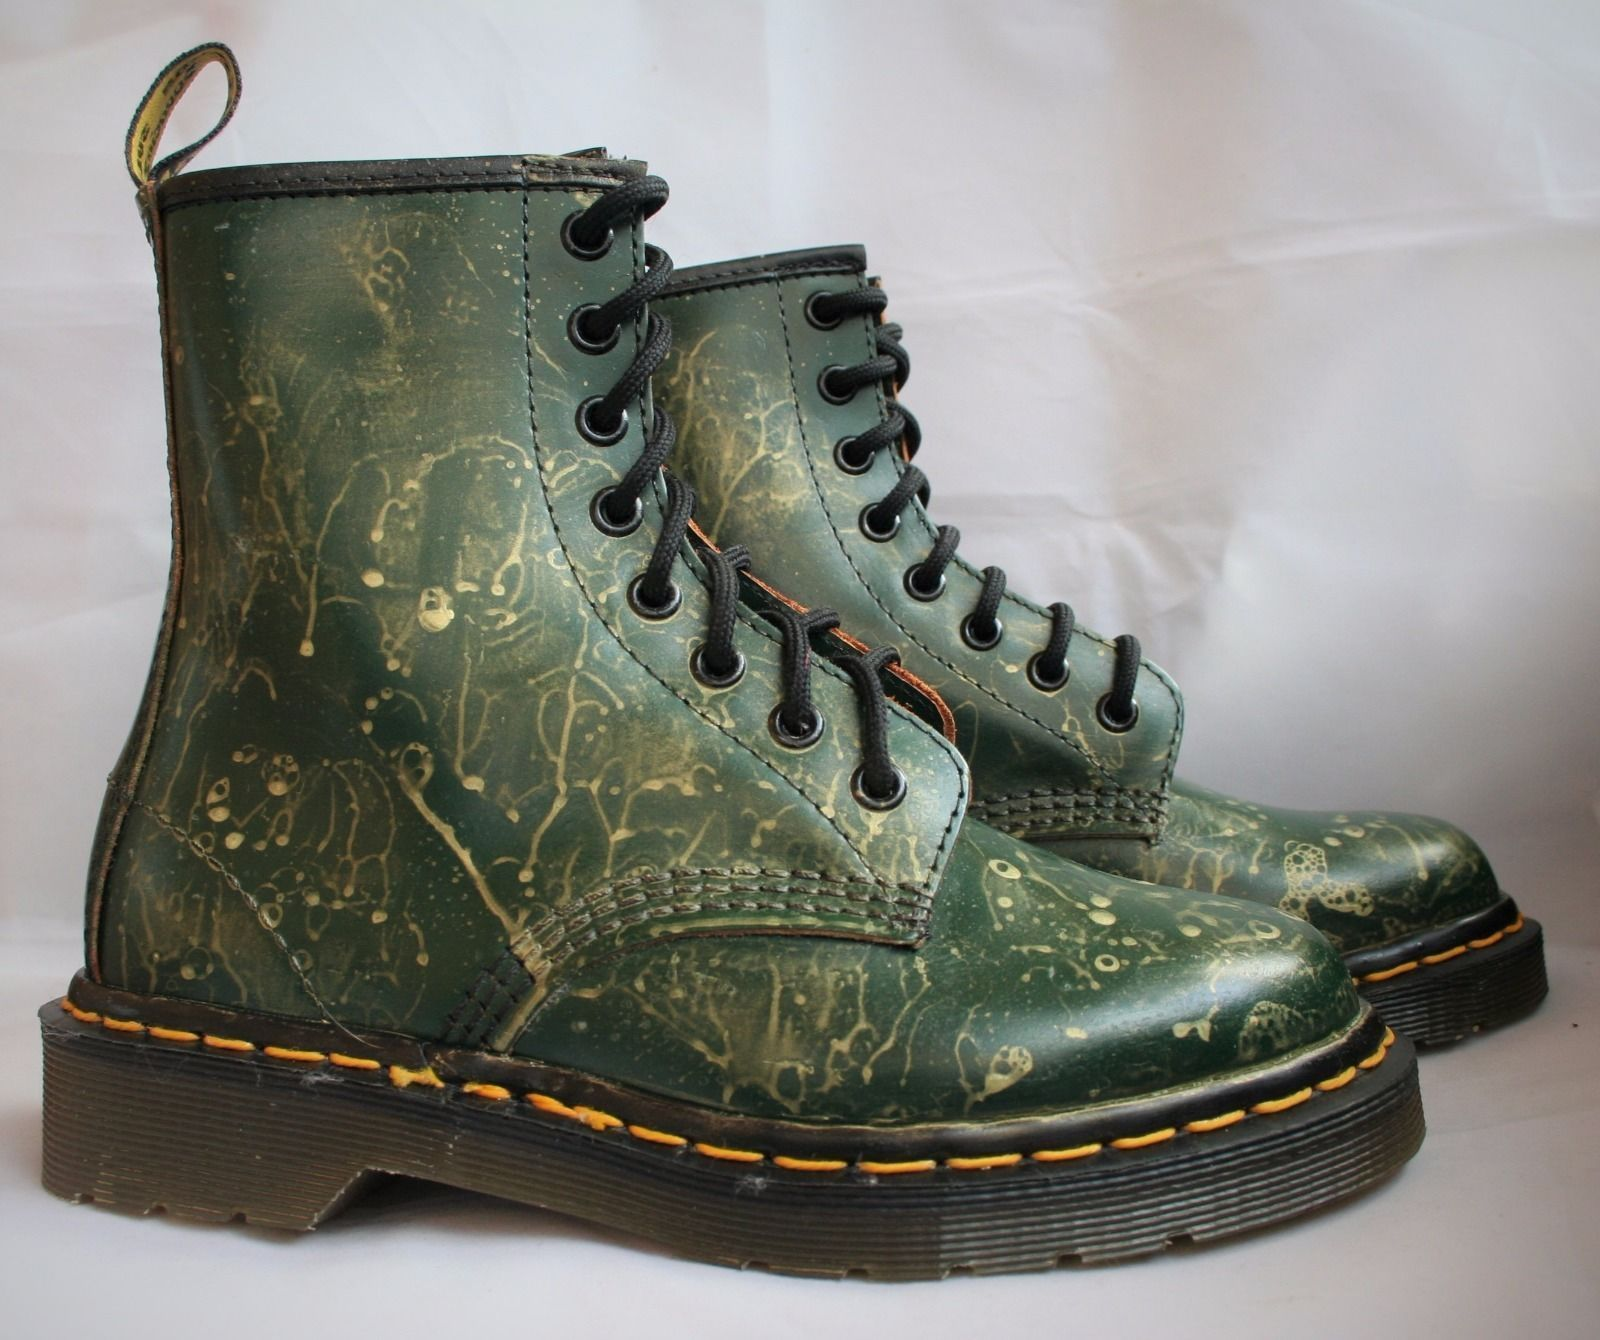 Dr Martens Made in England 1460 Green new wo box custom